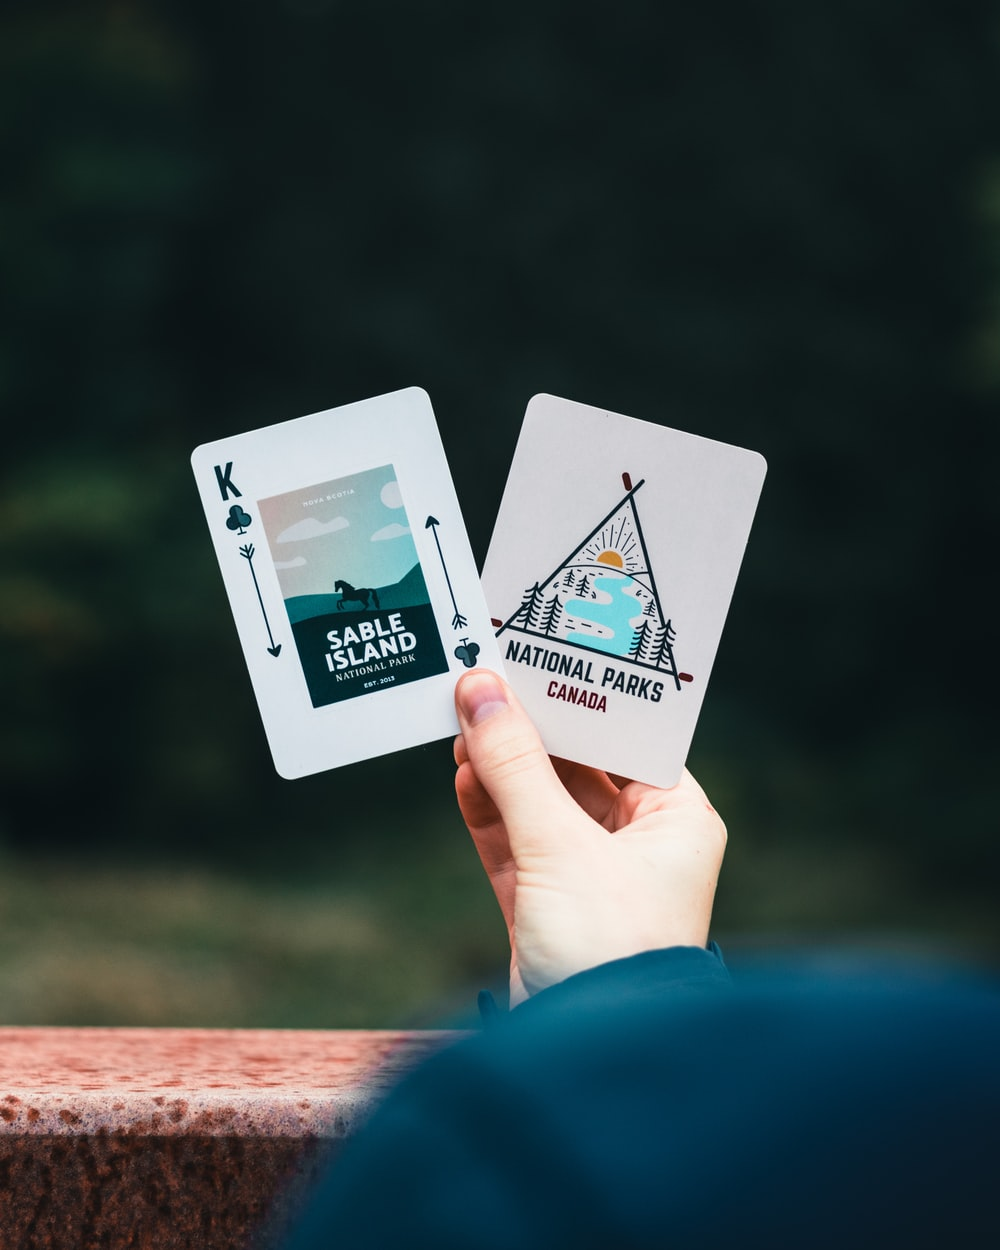 2 ace of spade and ace of spade playing cards